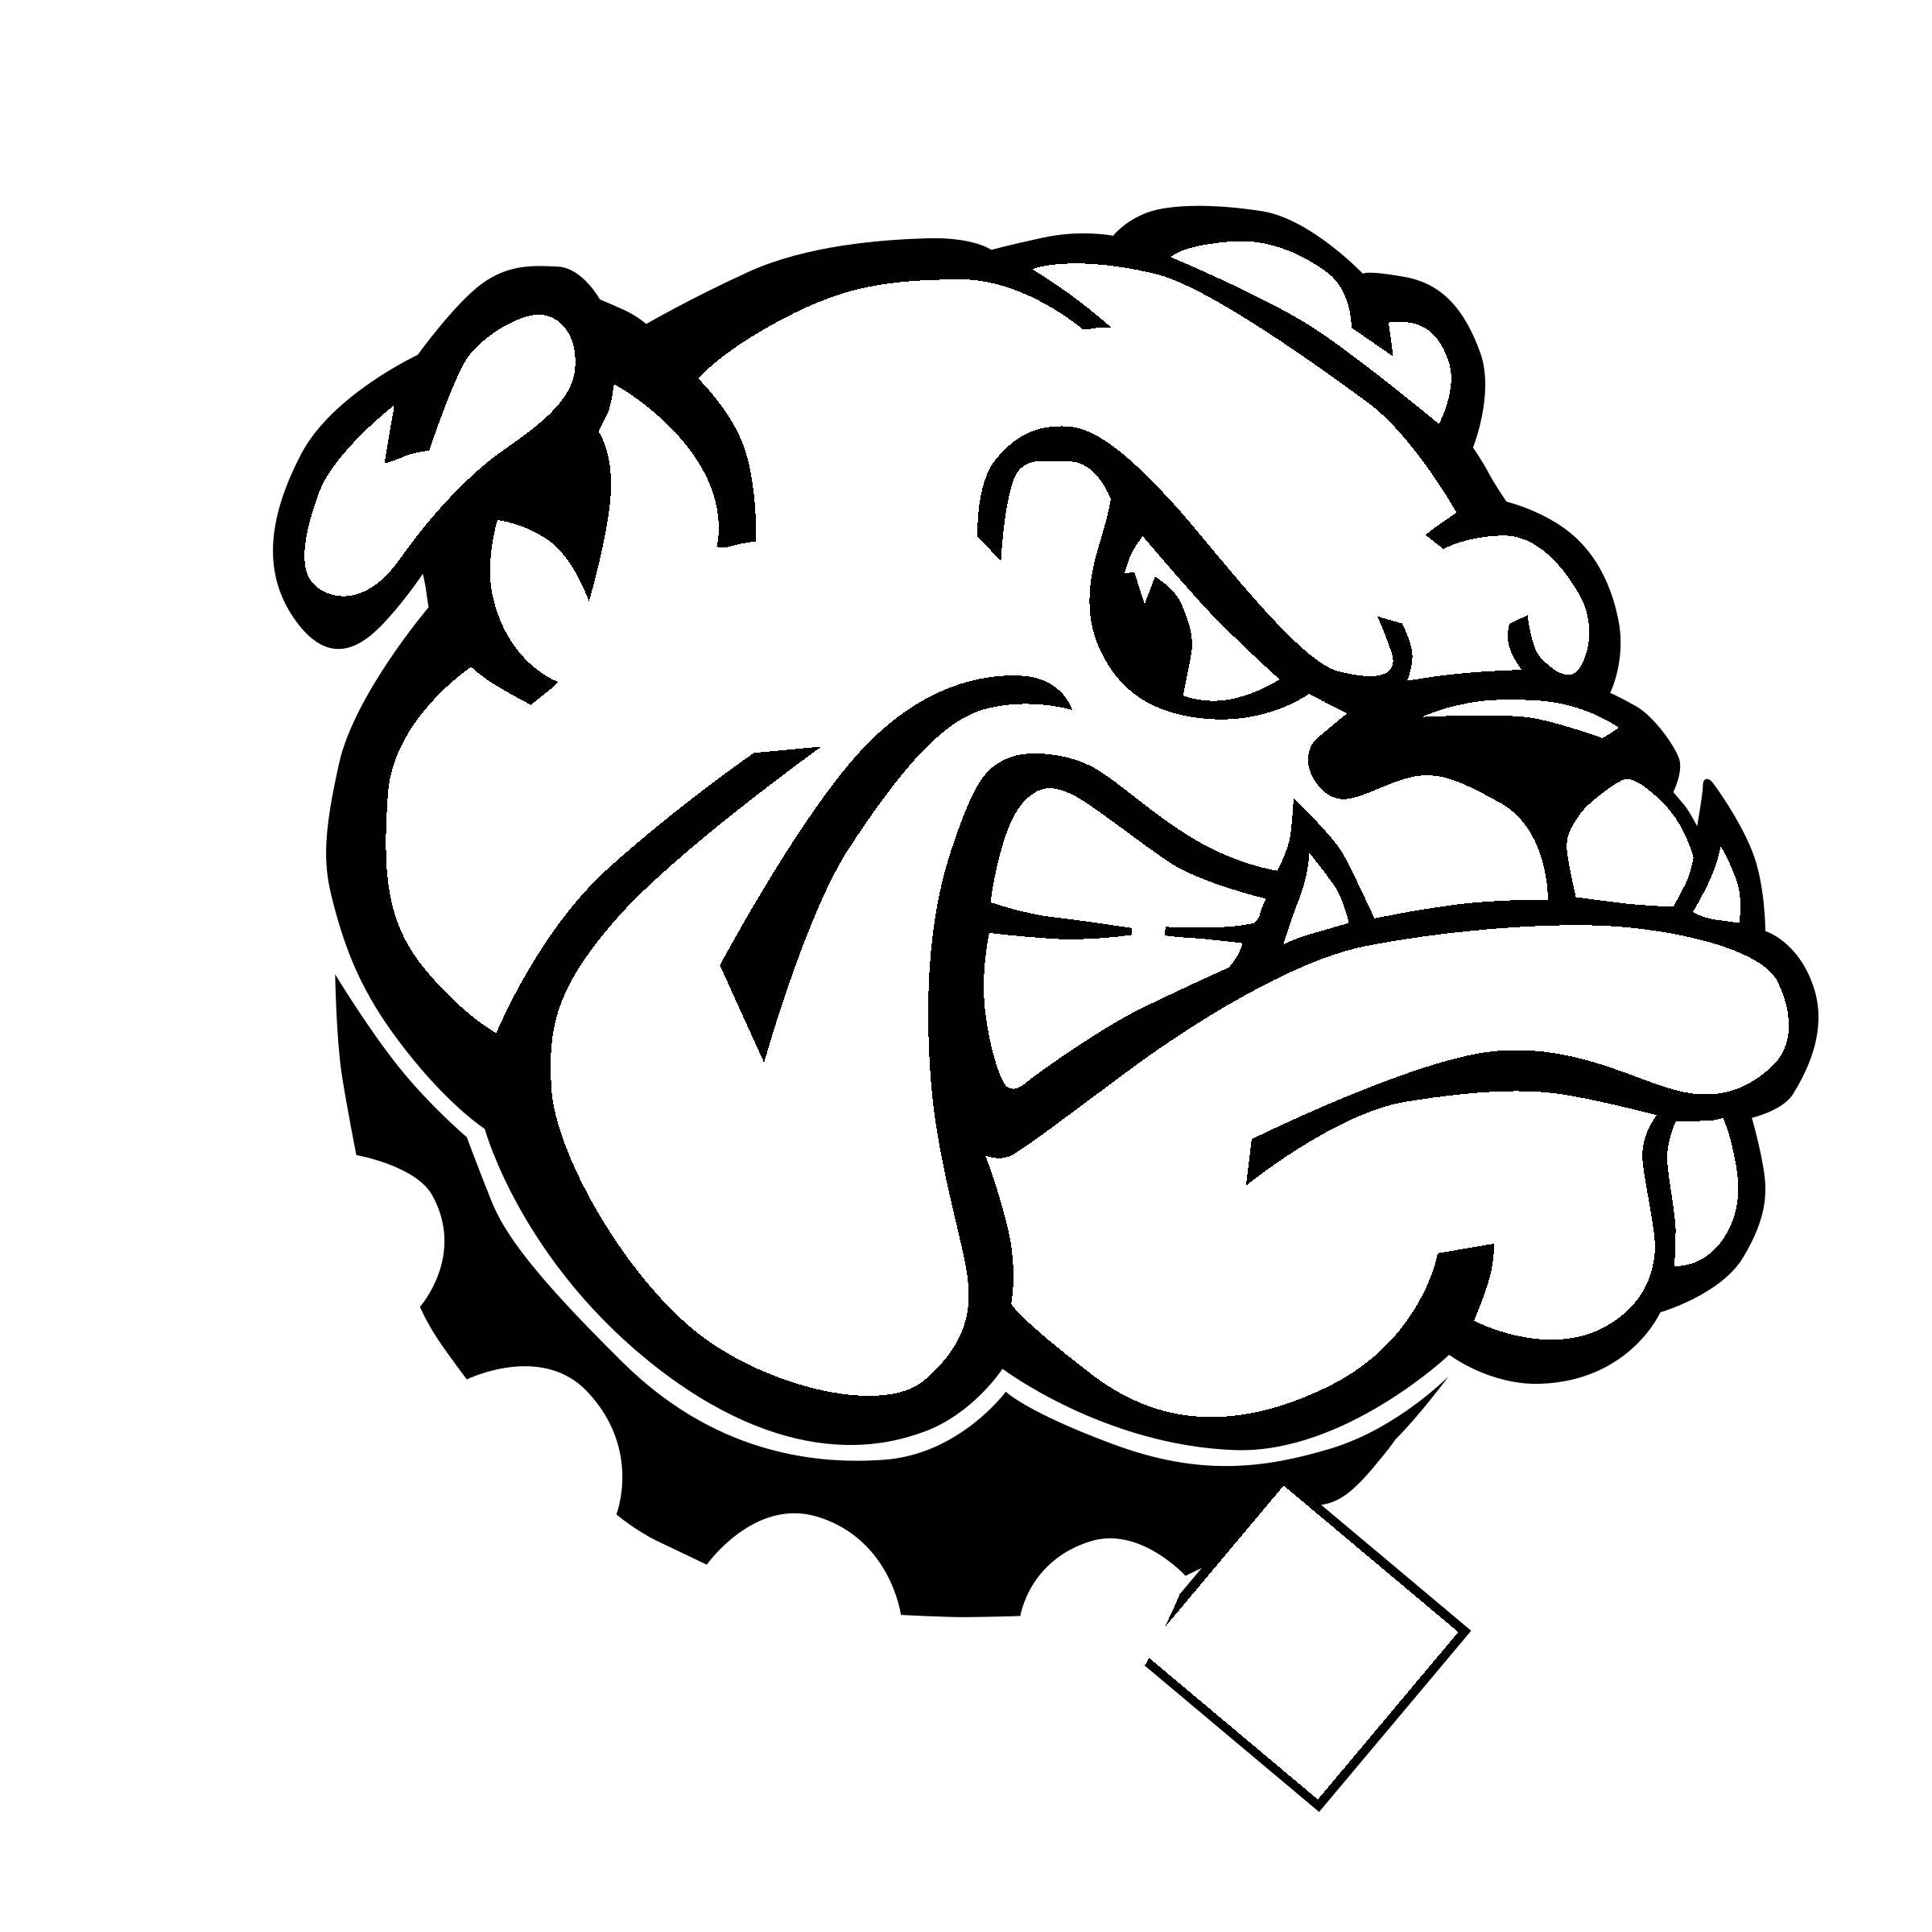 svg library stock Georgia bulldogs logo png. Vector bulldog black and white